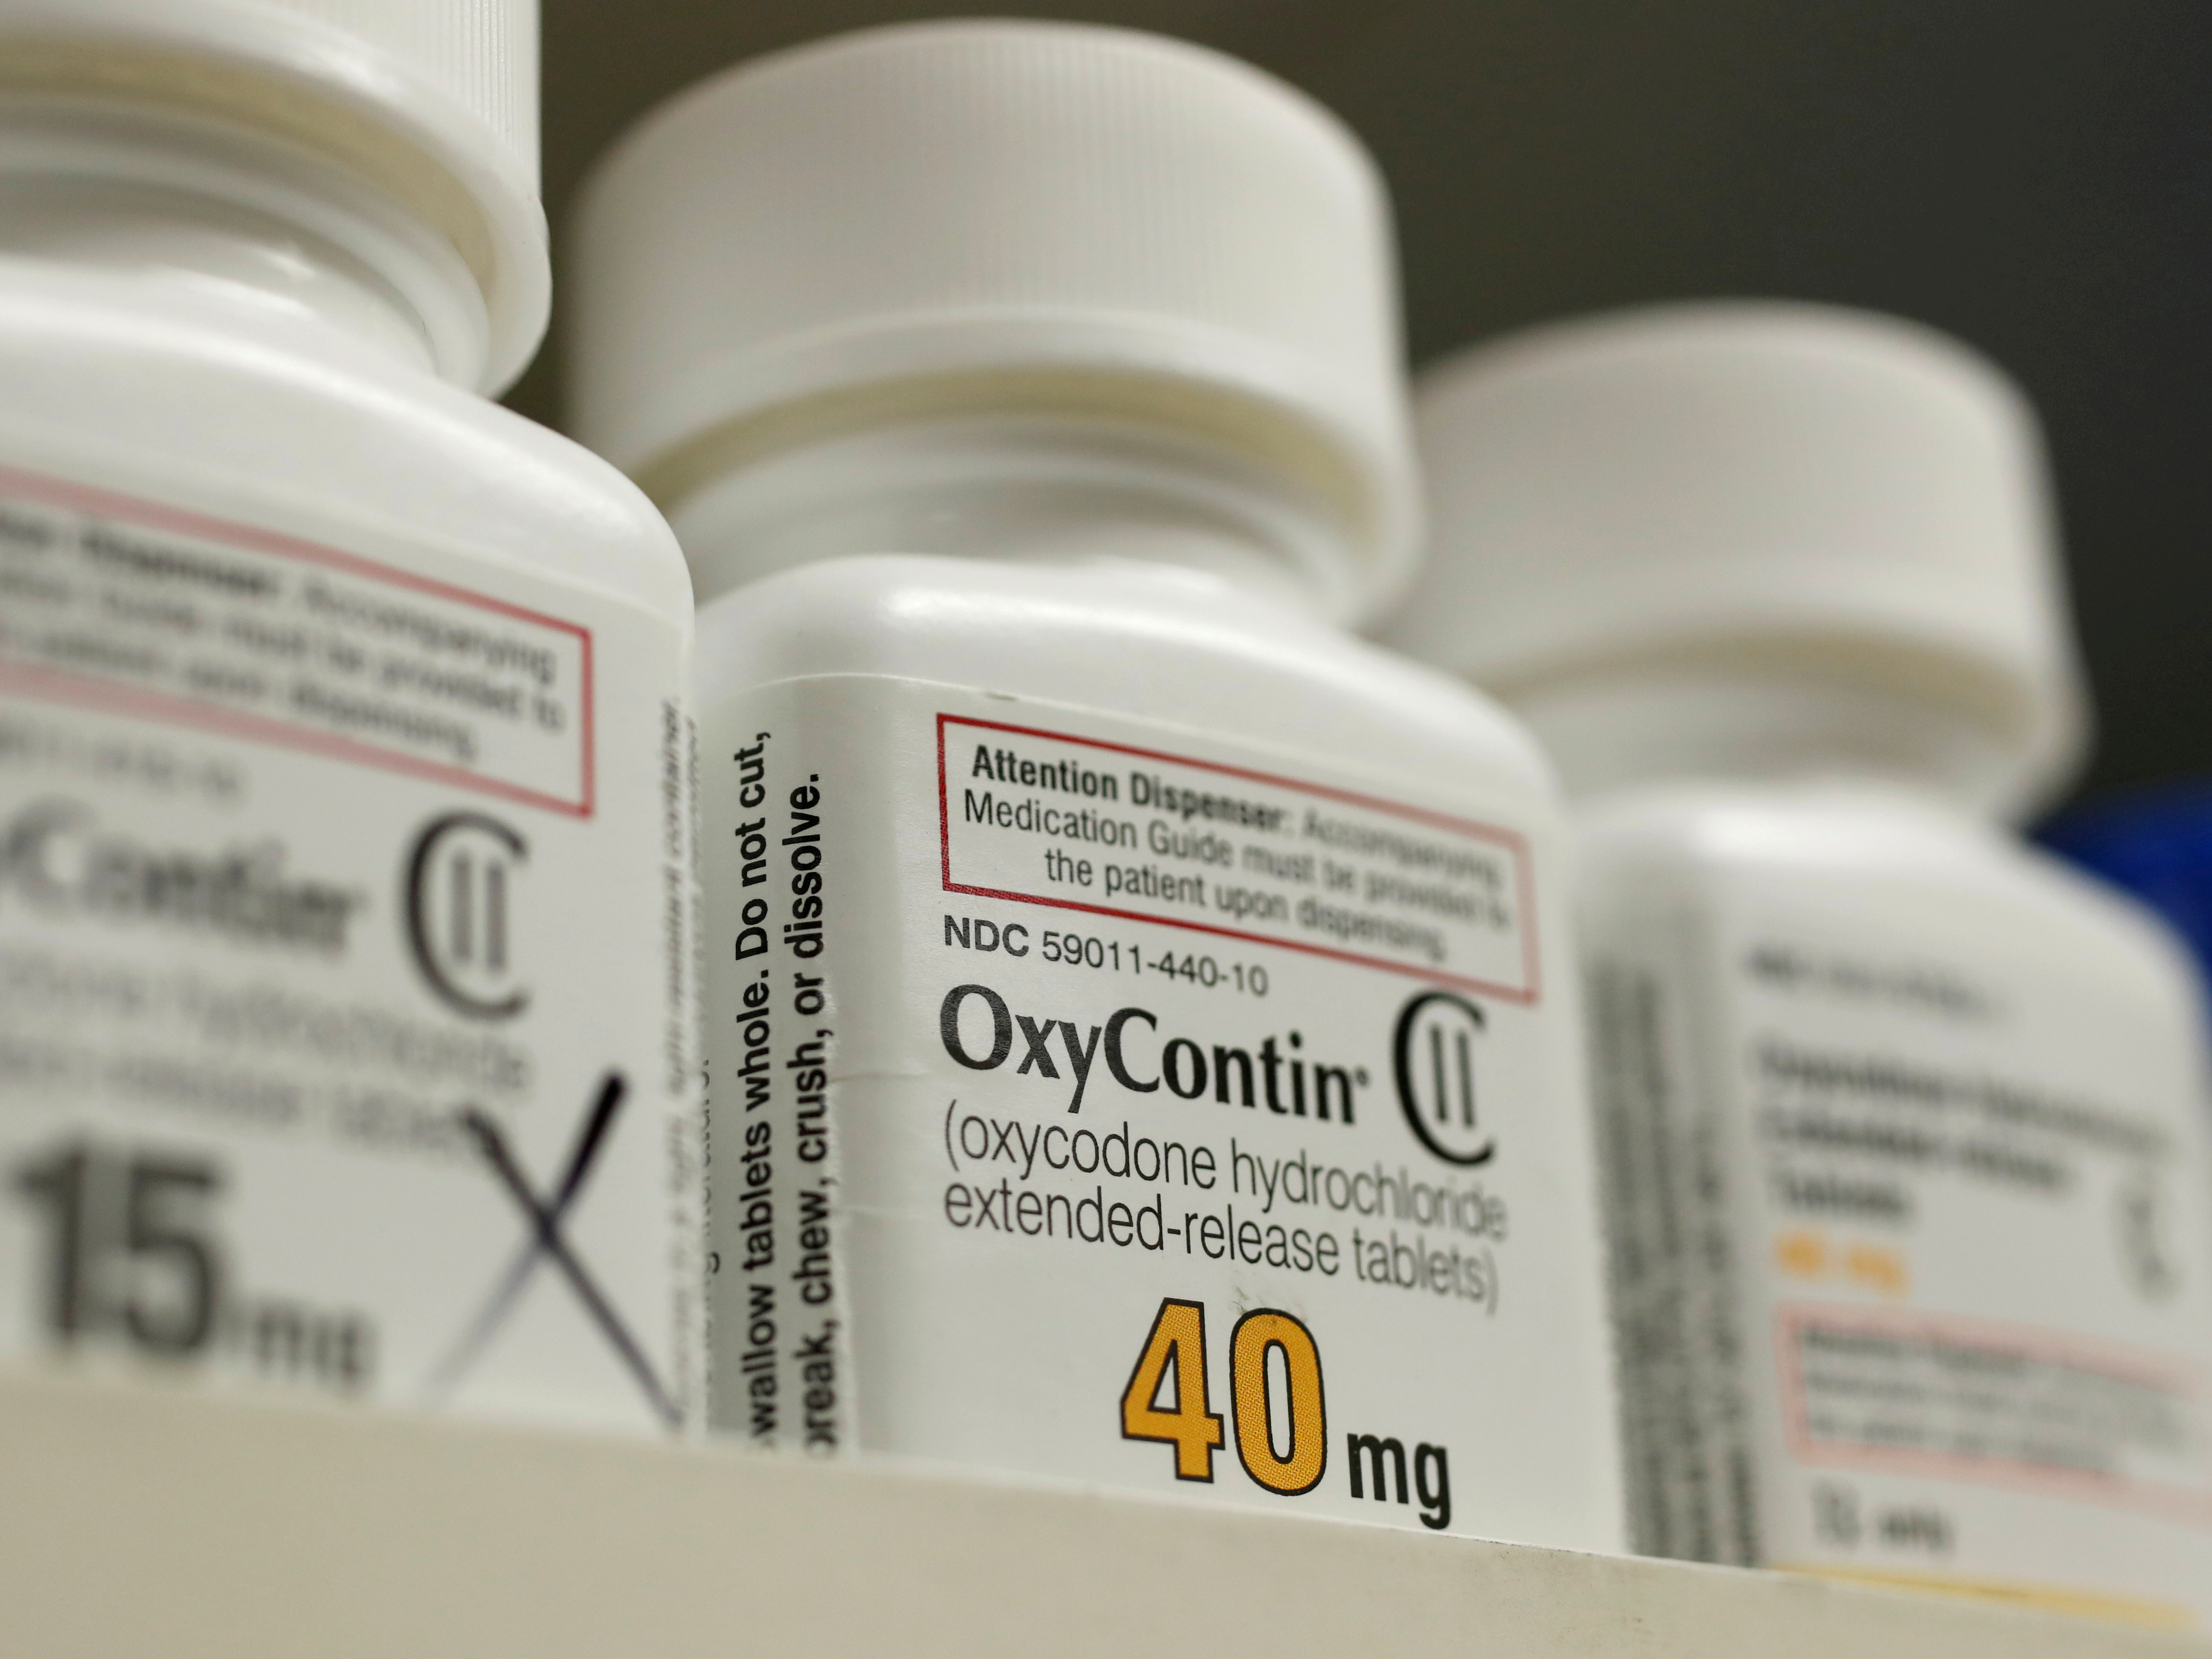 File photo: Bottles of prescription painkiller OxyContin, 40mg pills, made by Purdue Pharma L.D. sit on a shelf at a local pharmacy, in Provo, Utah, U.S., April 25, 2017. REUTERS/George Frey